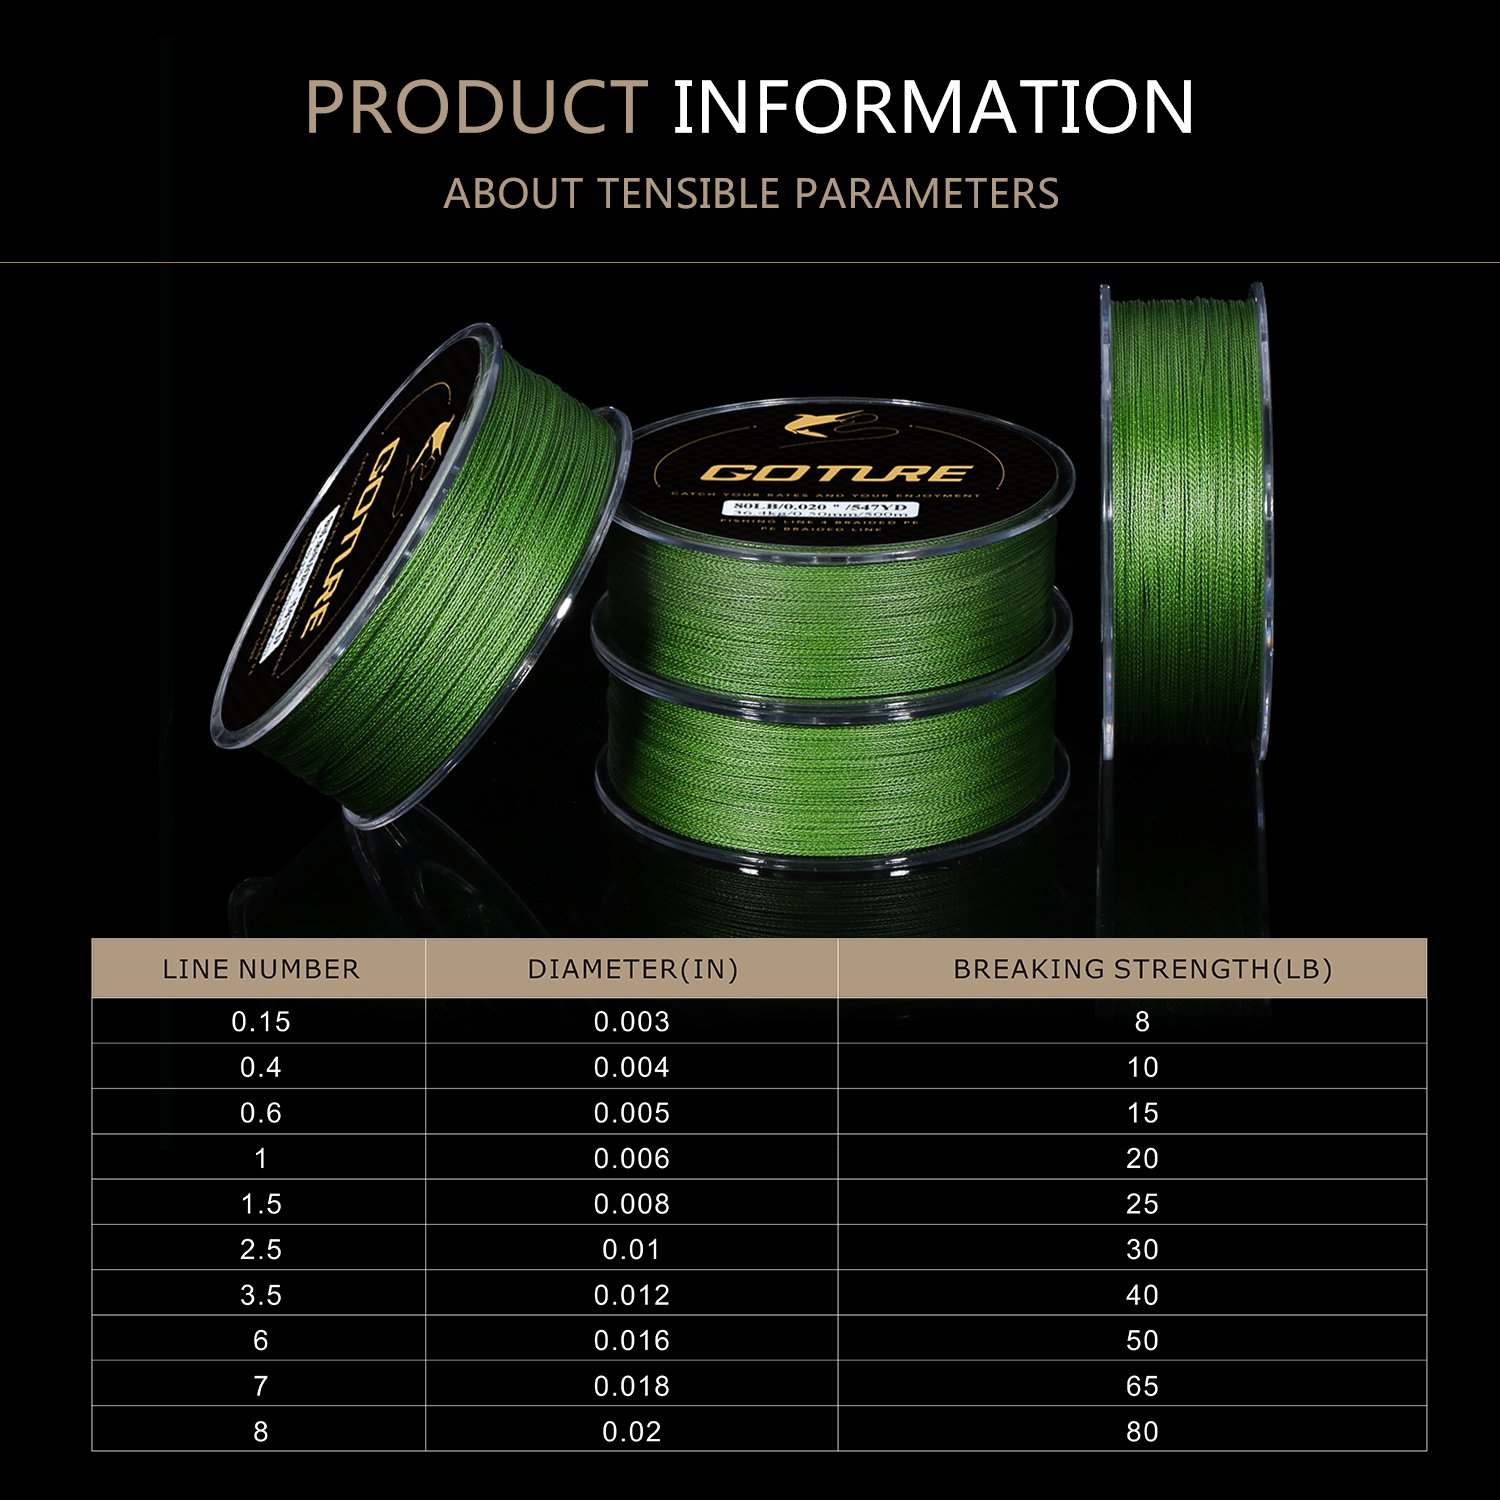 Goture 8-80LB Superpower Braided Fishing Line-Zero Stretch and High Tension Advanced Multifilamentline for Saltwater and Freshwater - Army Green, Blue, Blackish Green, Grey, Yellow- 2017 New by Goture (Image #6)